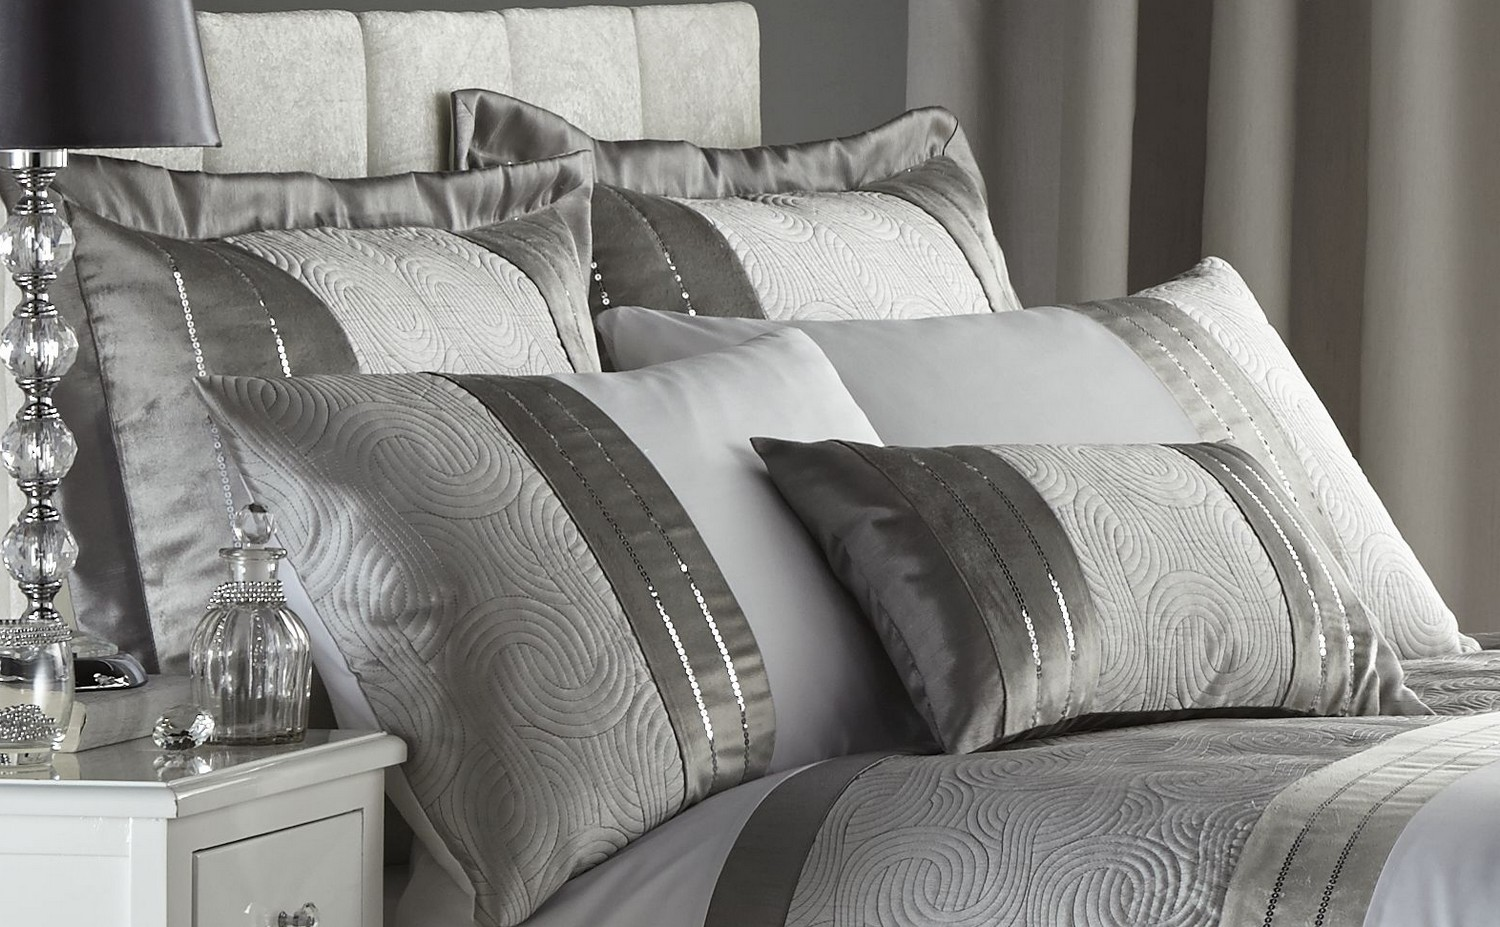 silver grey luxury duvet quilt cover bedding bed set or curtains  - silvergreyluxuryduvetquiltcoverbeddingbed